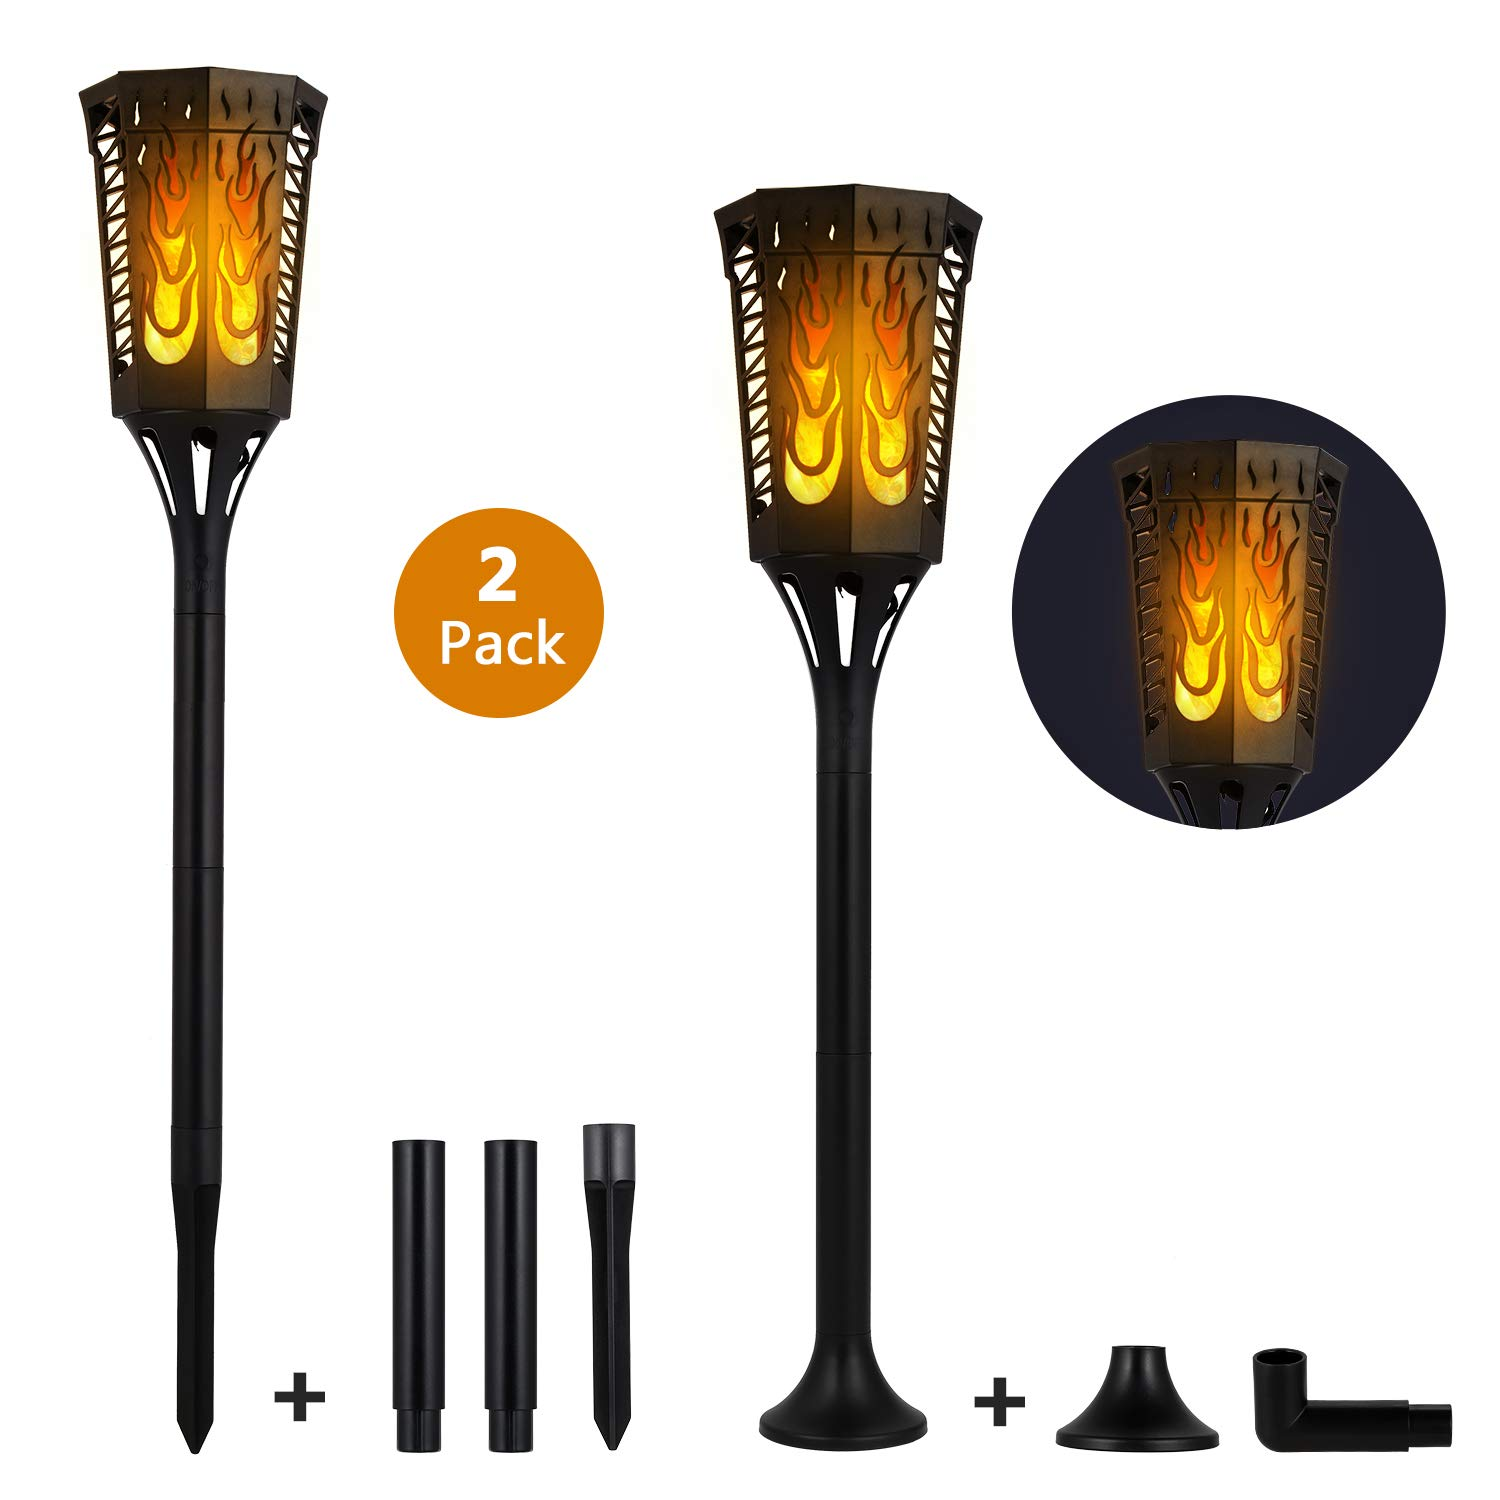 Sailnovo Solar Torch Light Flickering Flame Outdoor Dancing Flickering Flame Tiki Lights 4 Usage Modes 96 LED IP65 Waterproof Landscape Lighting Dusk to Dawn Auto On/Off Backyard Decoration 2 Pack by Sailnovo (Image #1)